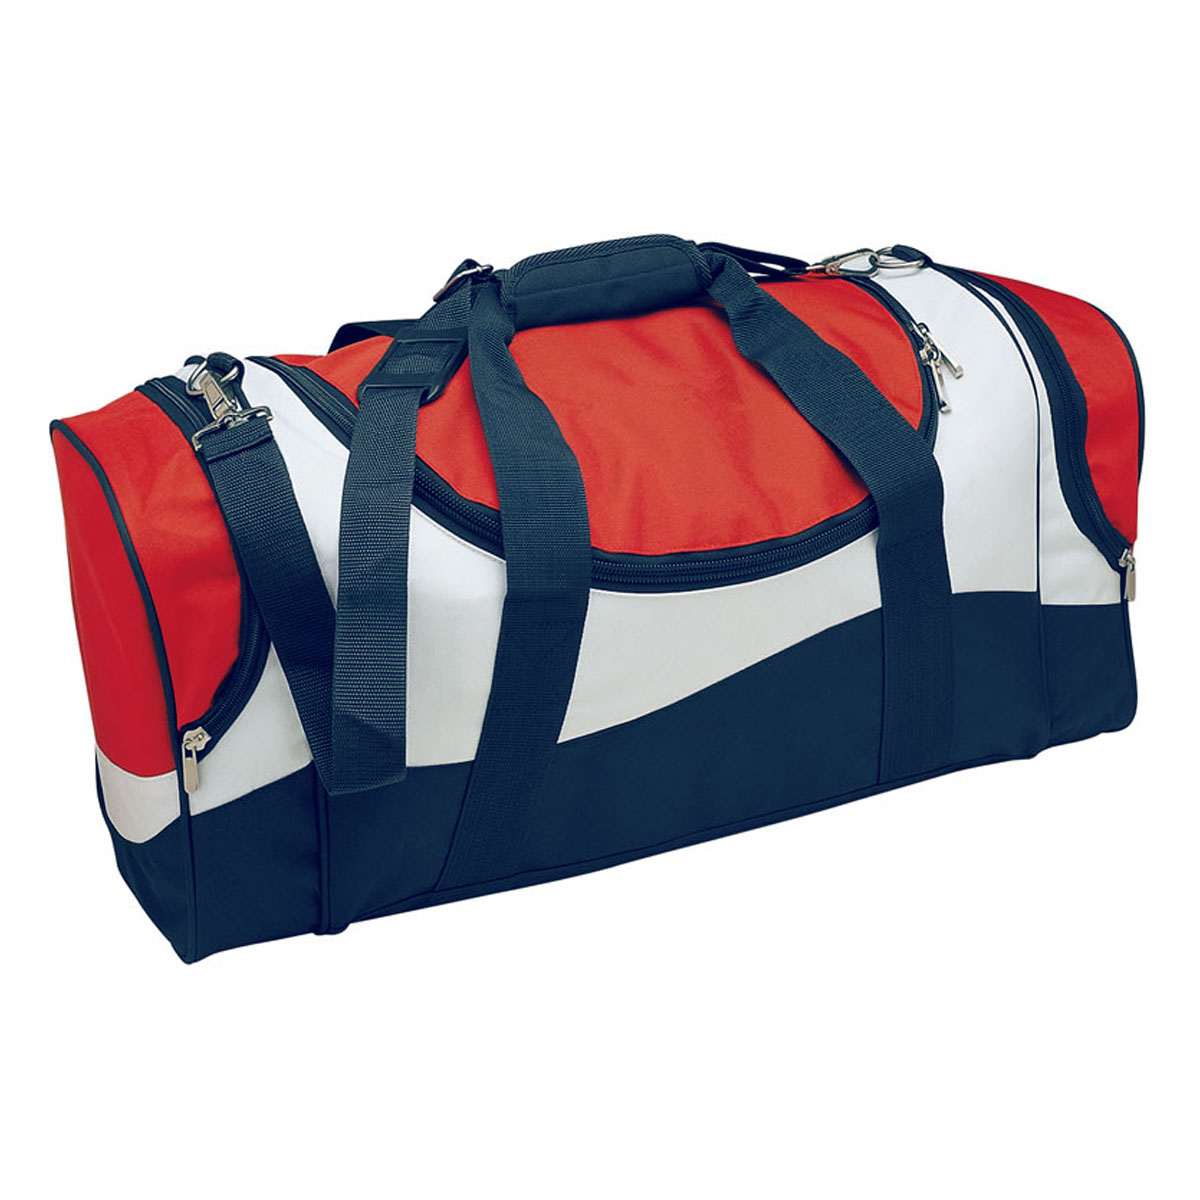 230093e118 Sunset Sports Bag - Southern Cross Brands